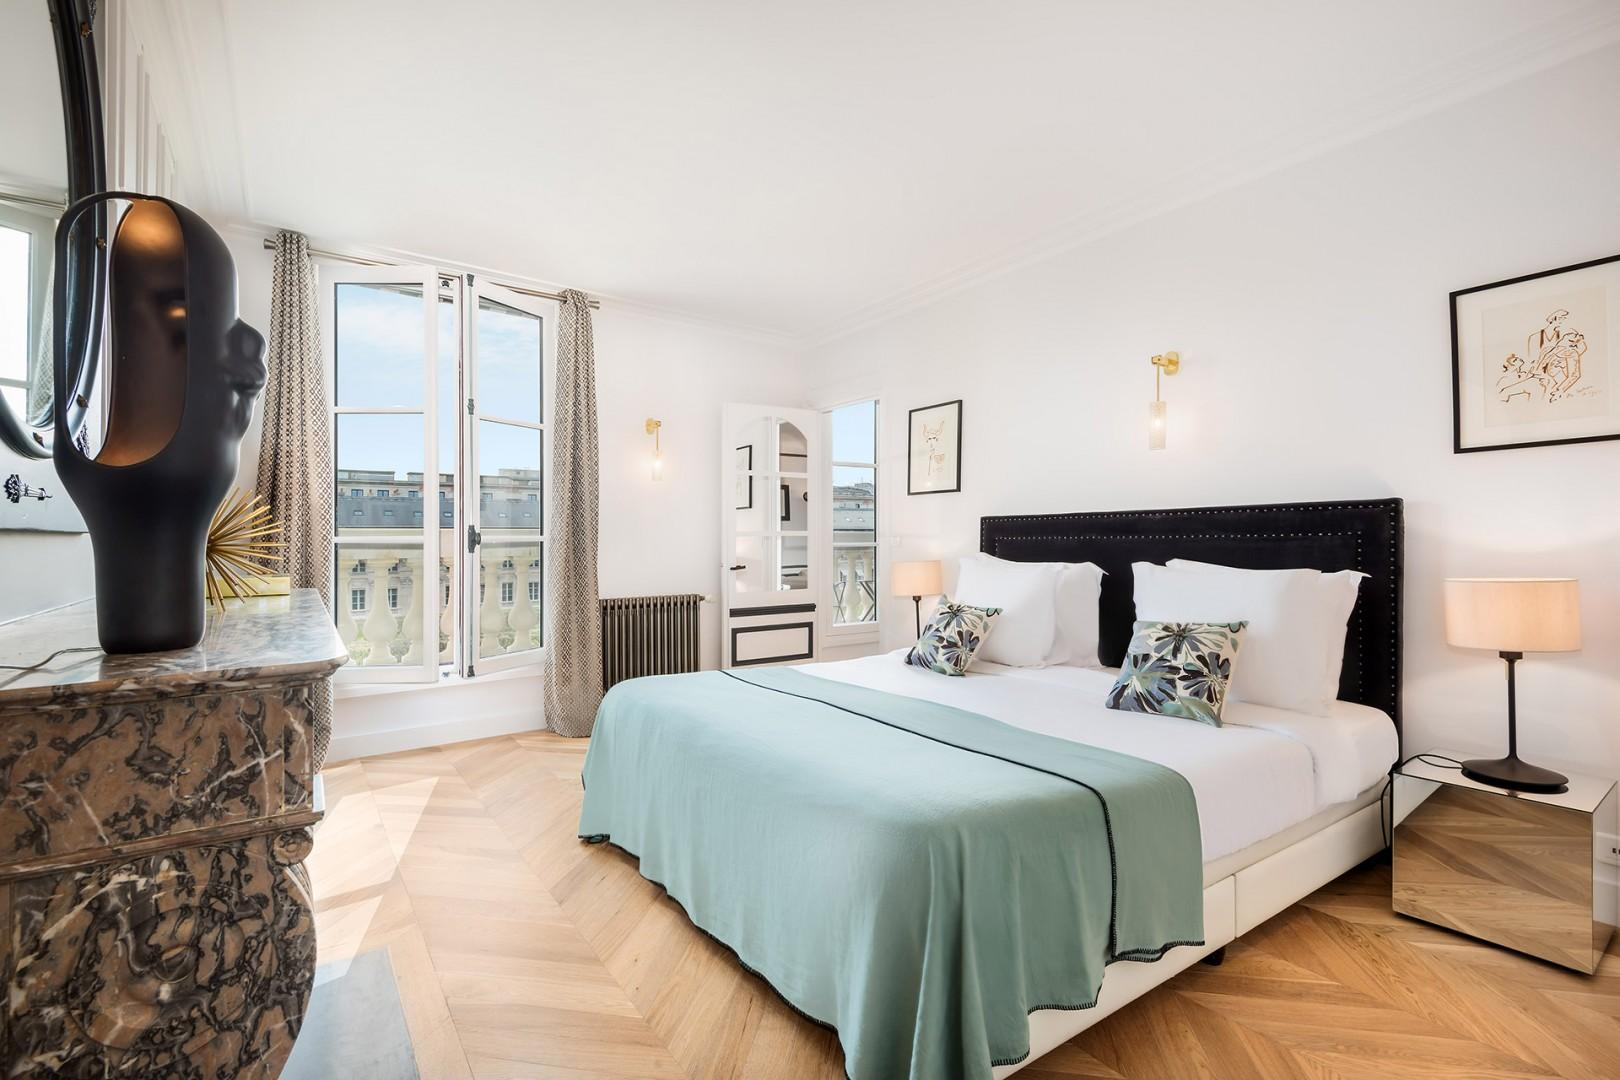 The spacious bedroom 1 is modern and elegantly furnished.